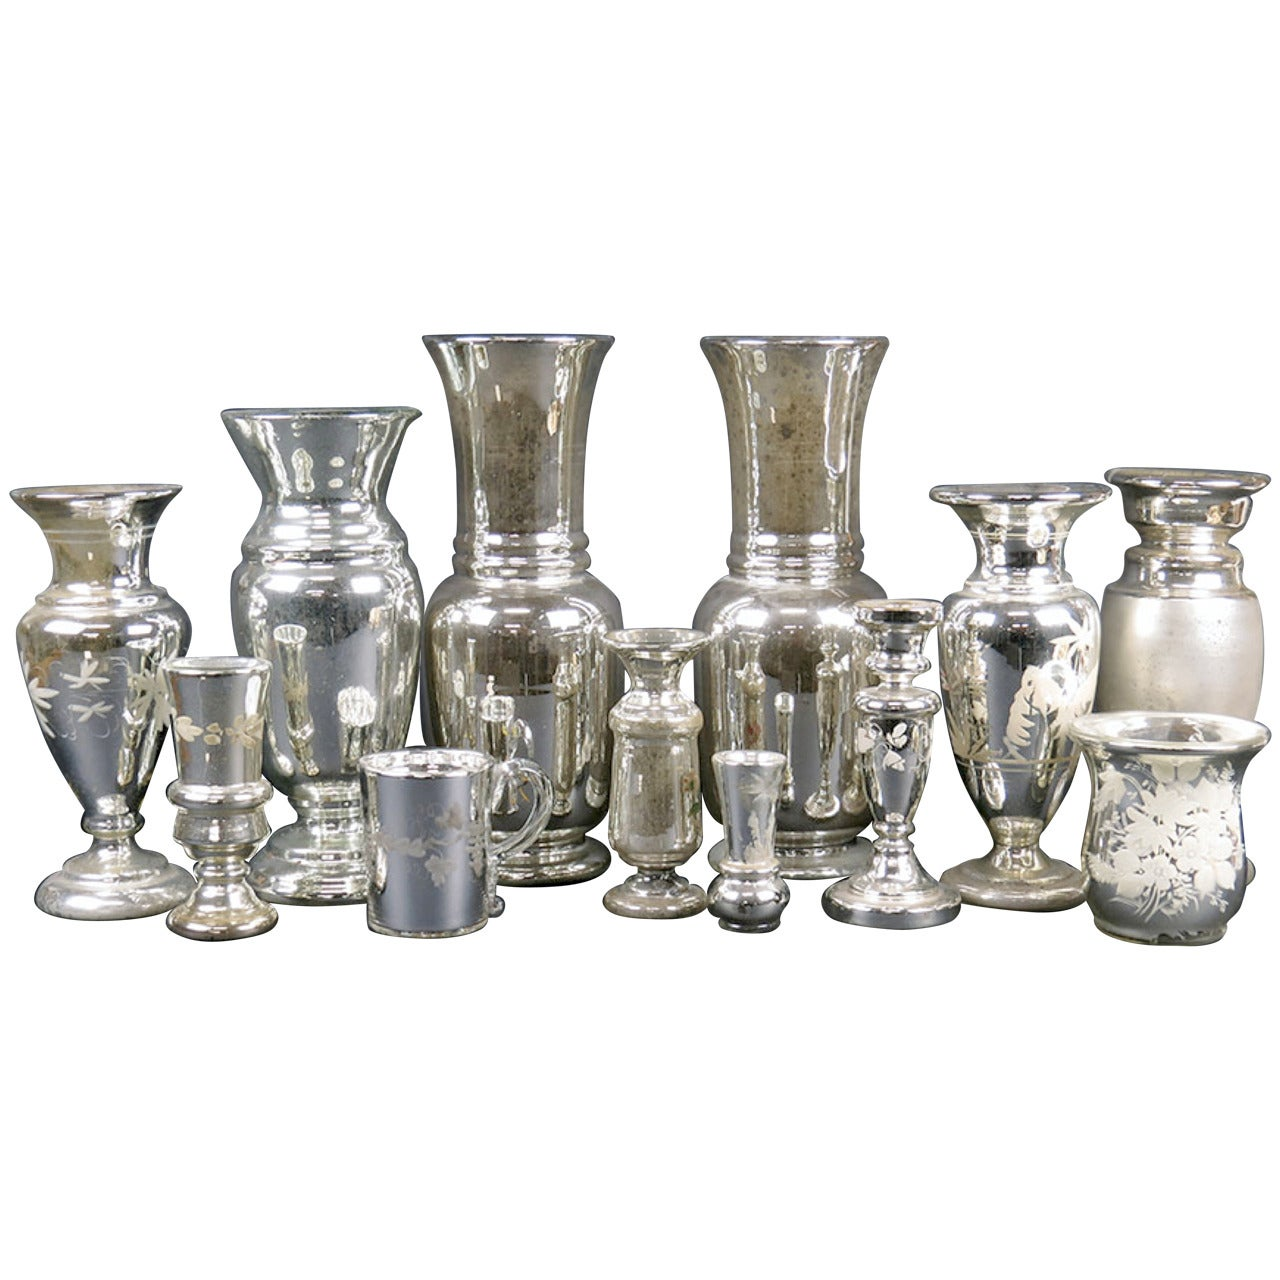 Extensive Collection of Early Mercury Glass